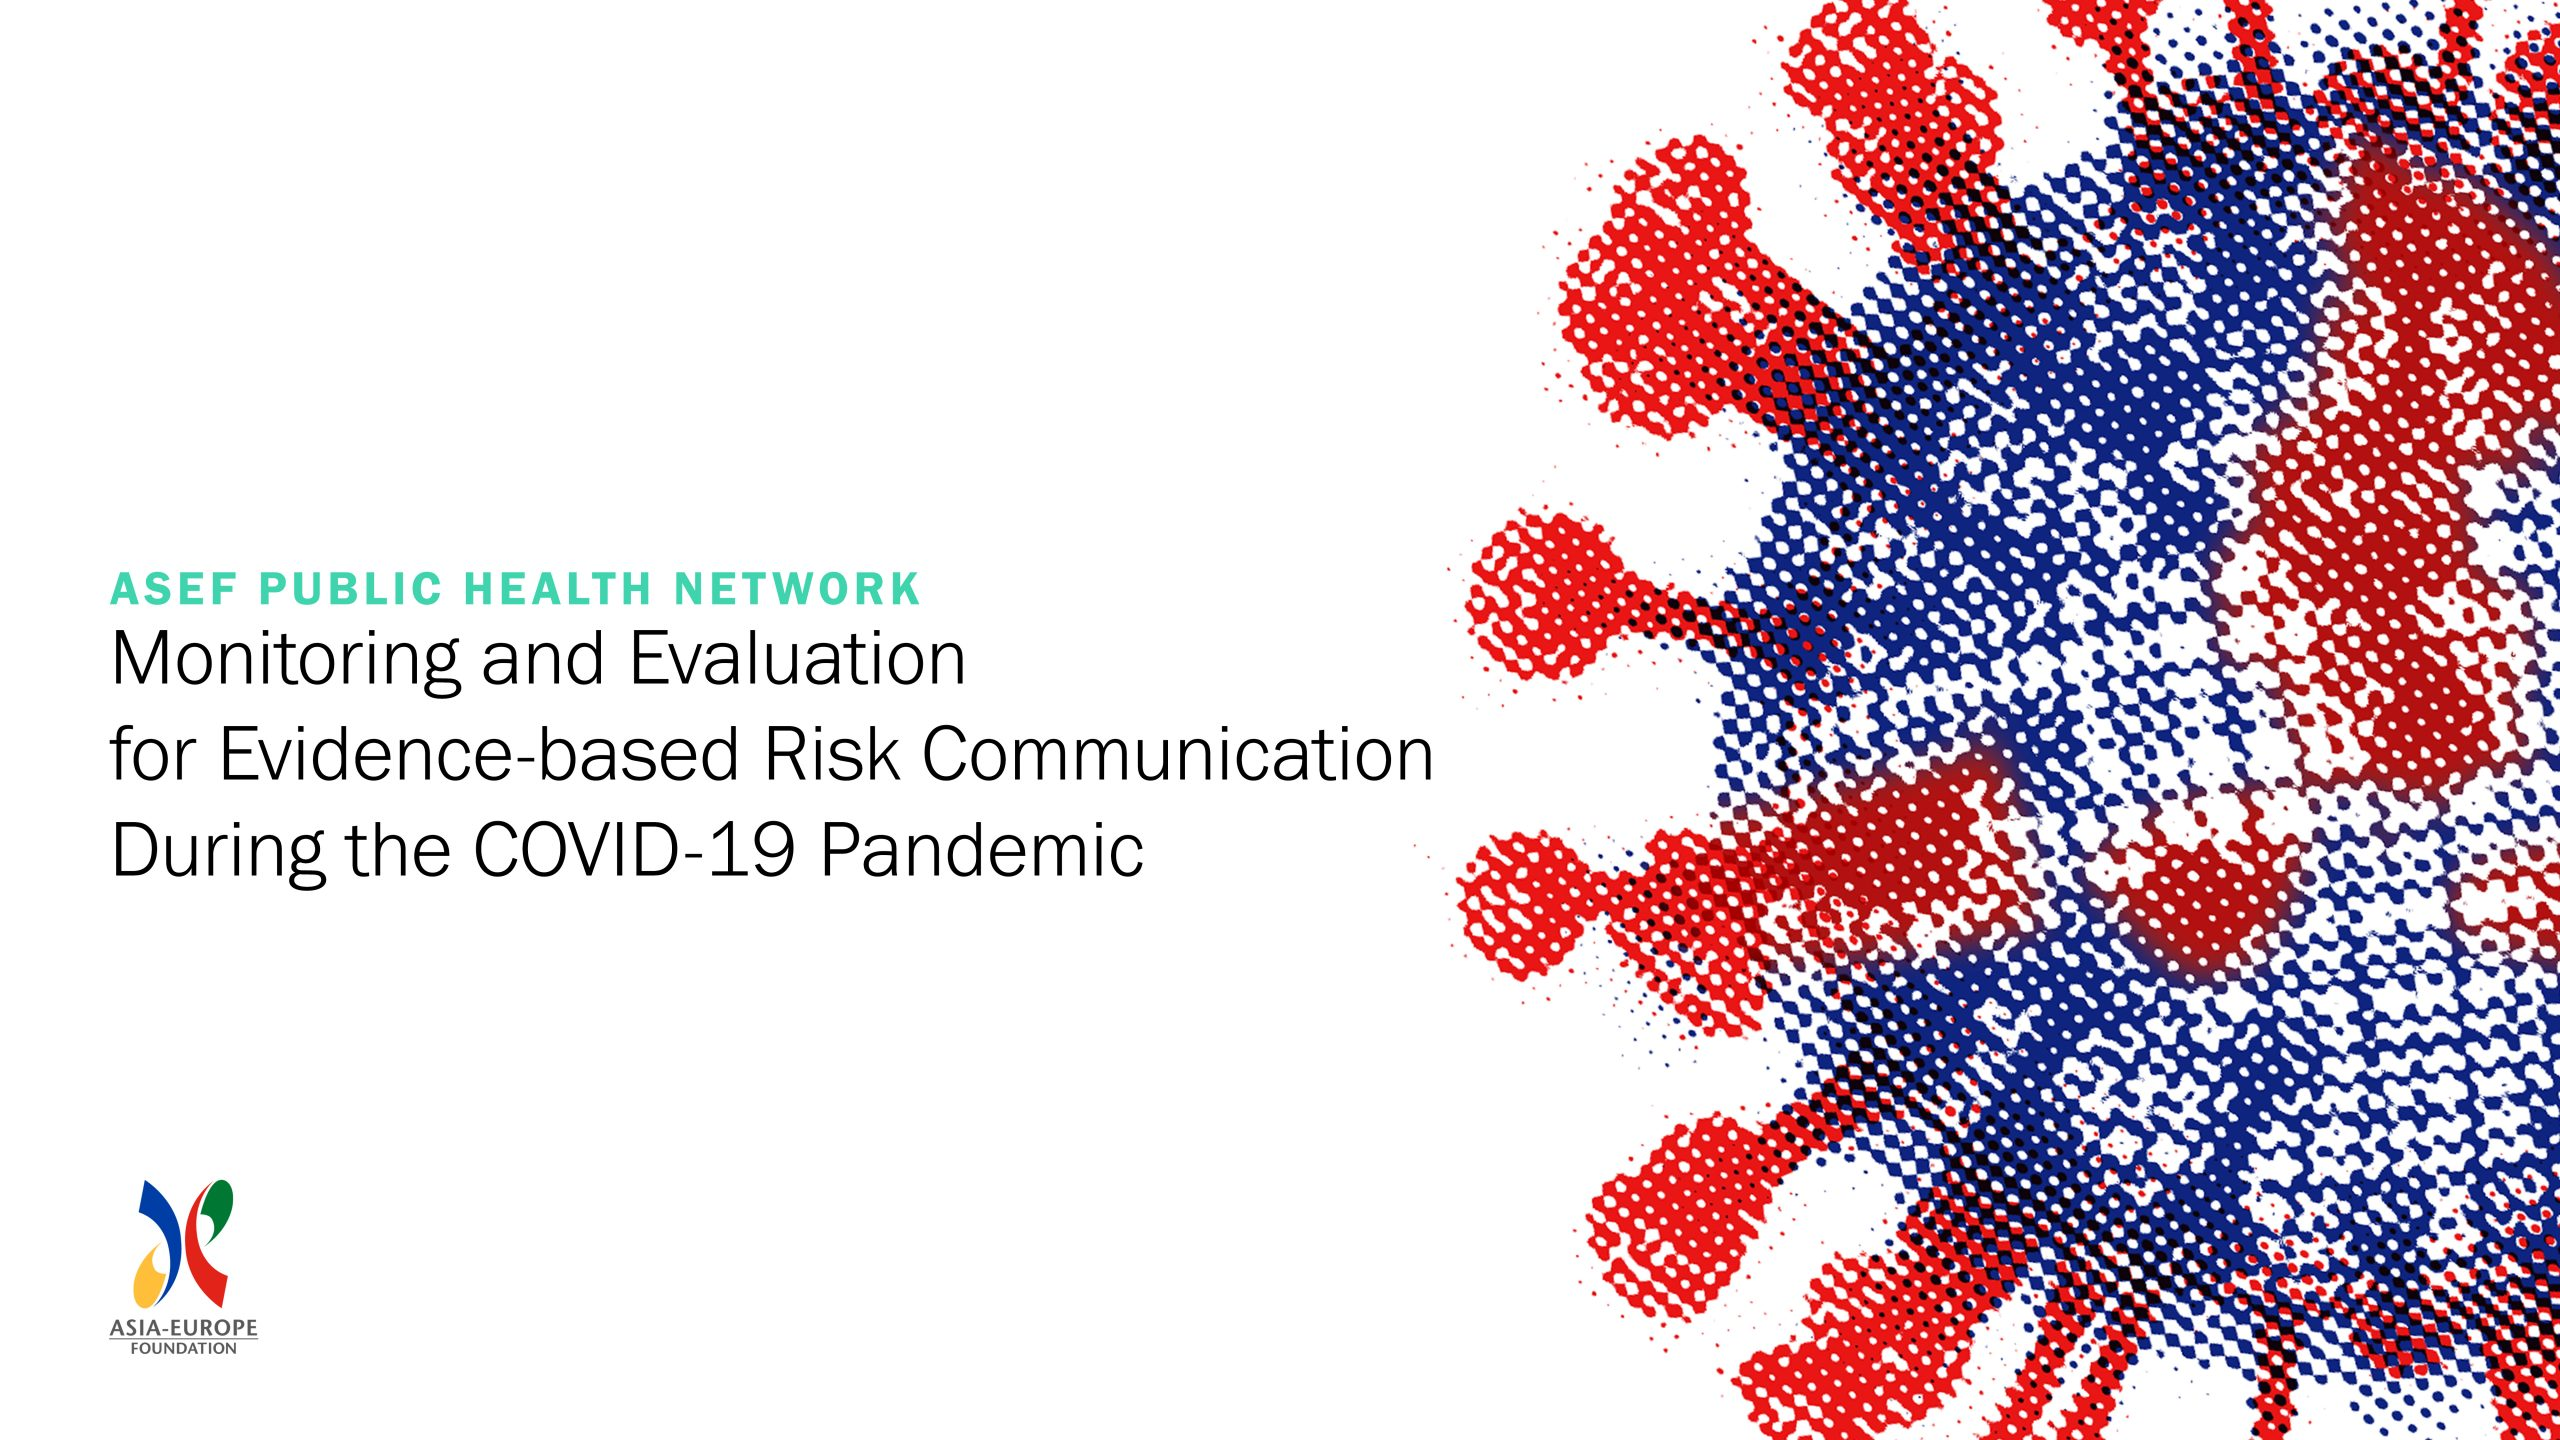 Monitoring and Evaluation for evidence-based risk communication during the COVID-19 pandemic